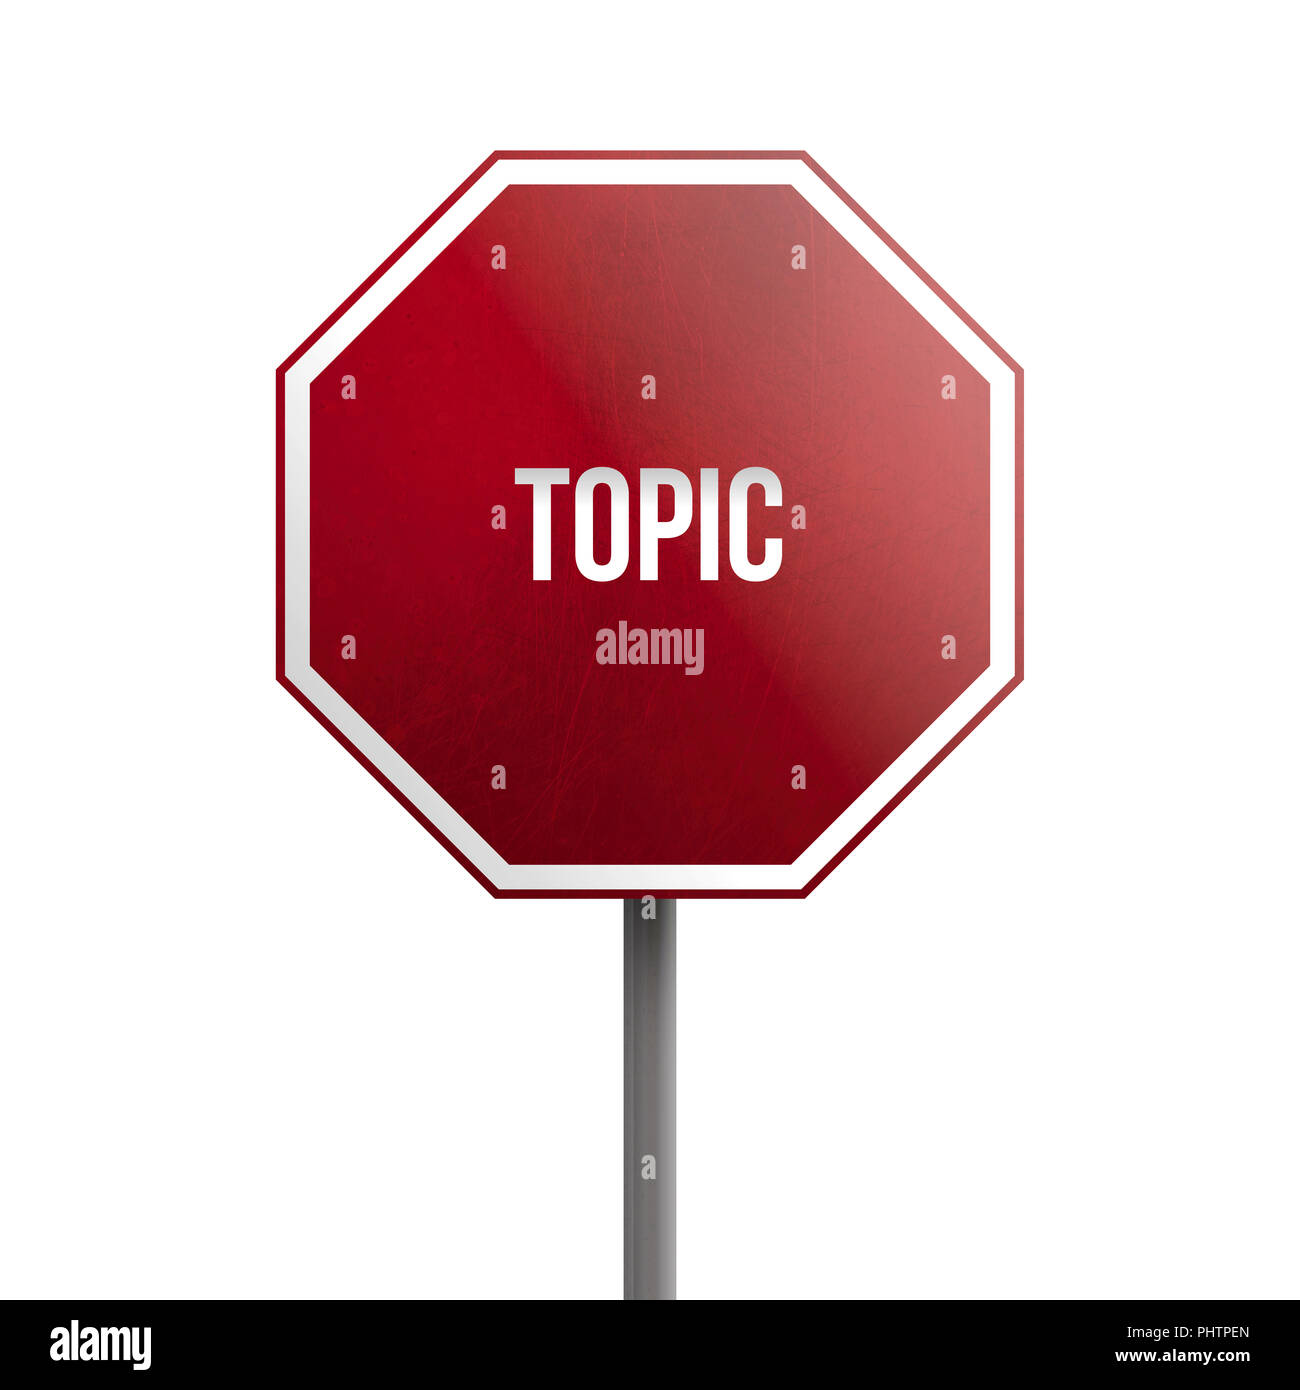 topic - red sign isolated on white background - Stock Image